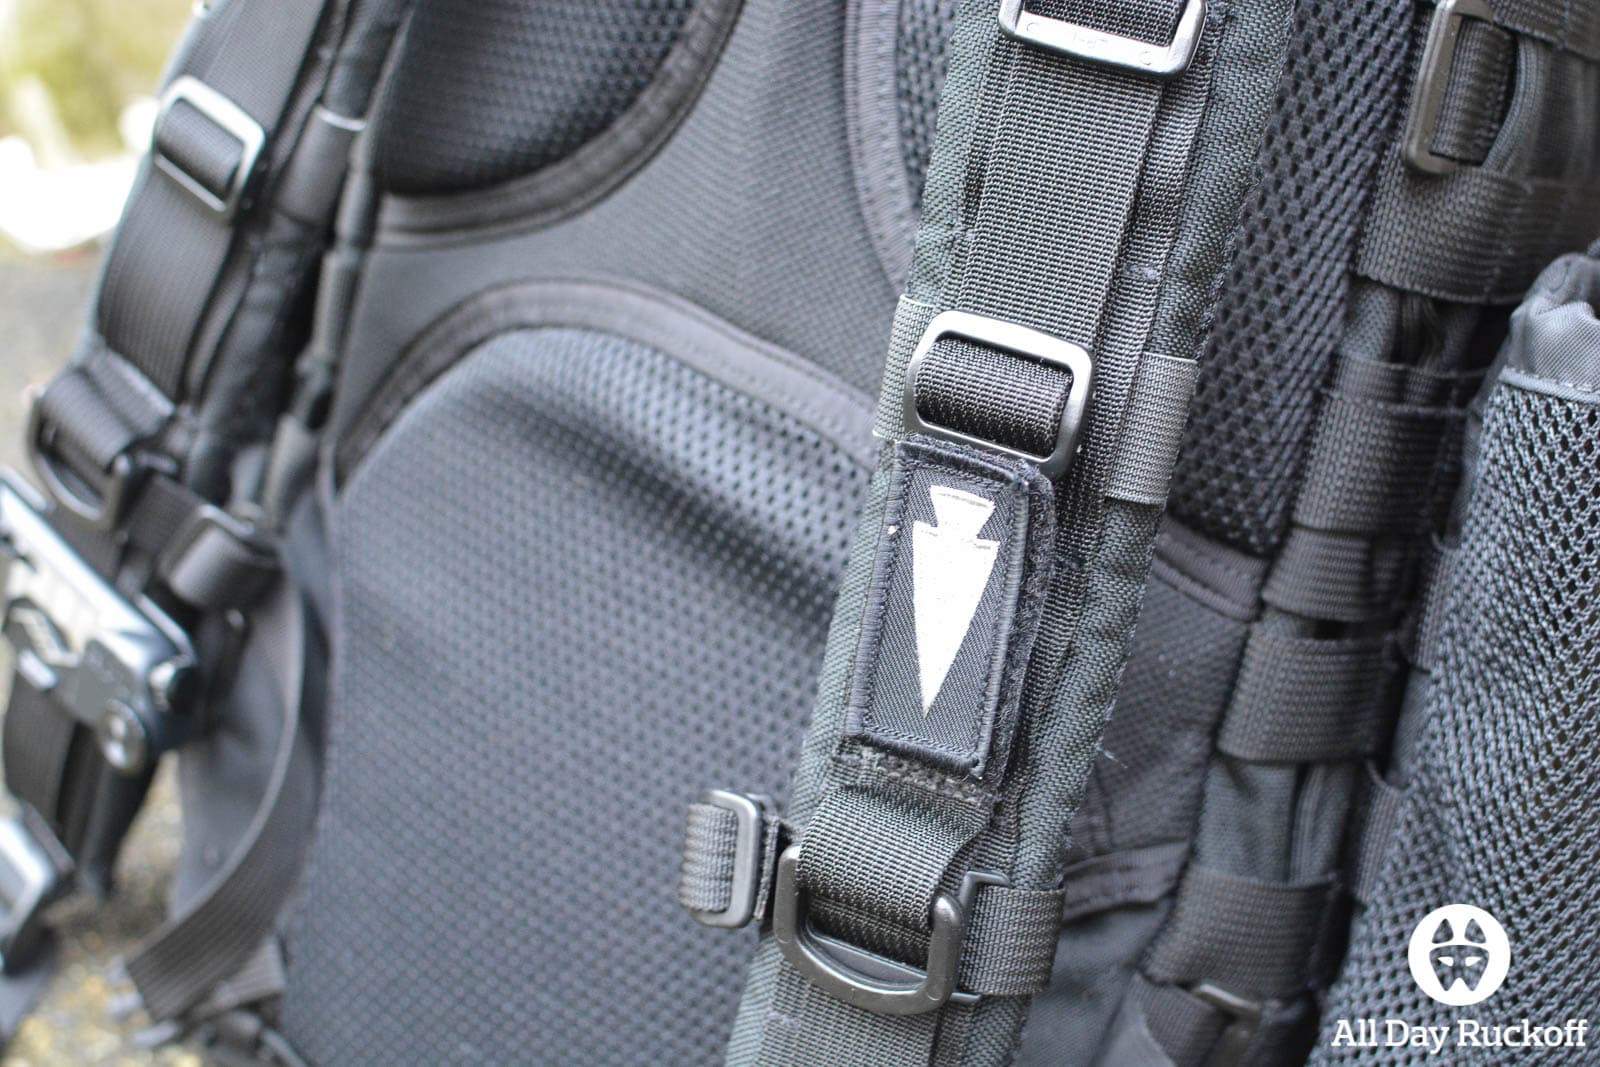 Triple Aught Design Litespeed Review - Ruck Works Patch PALS